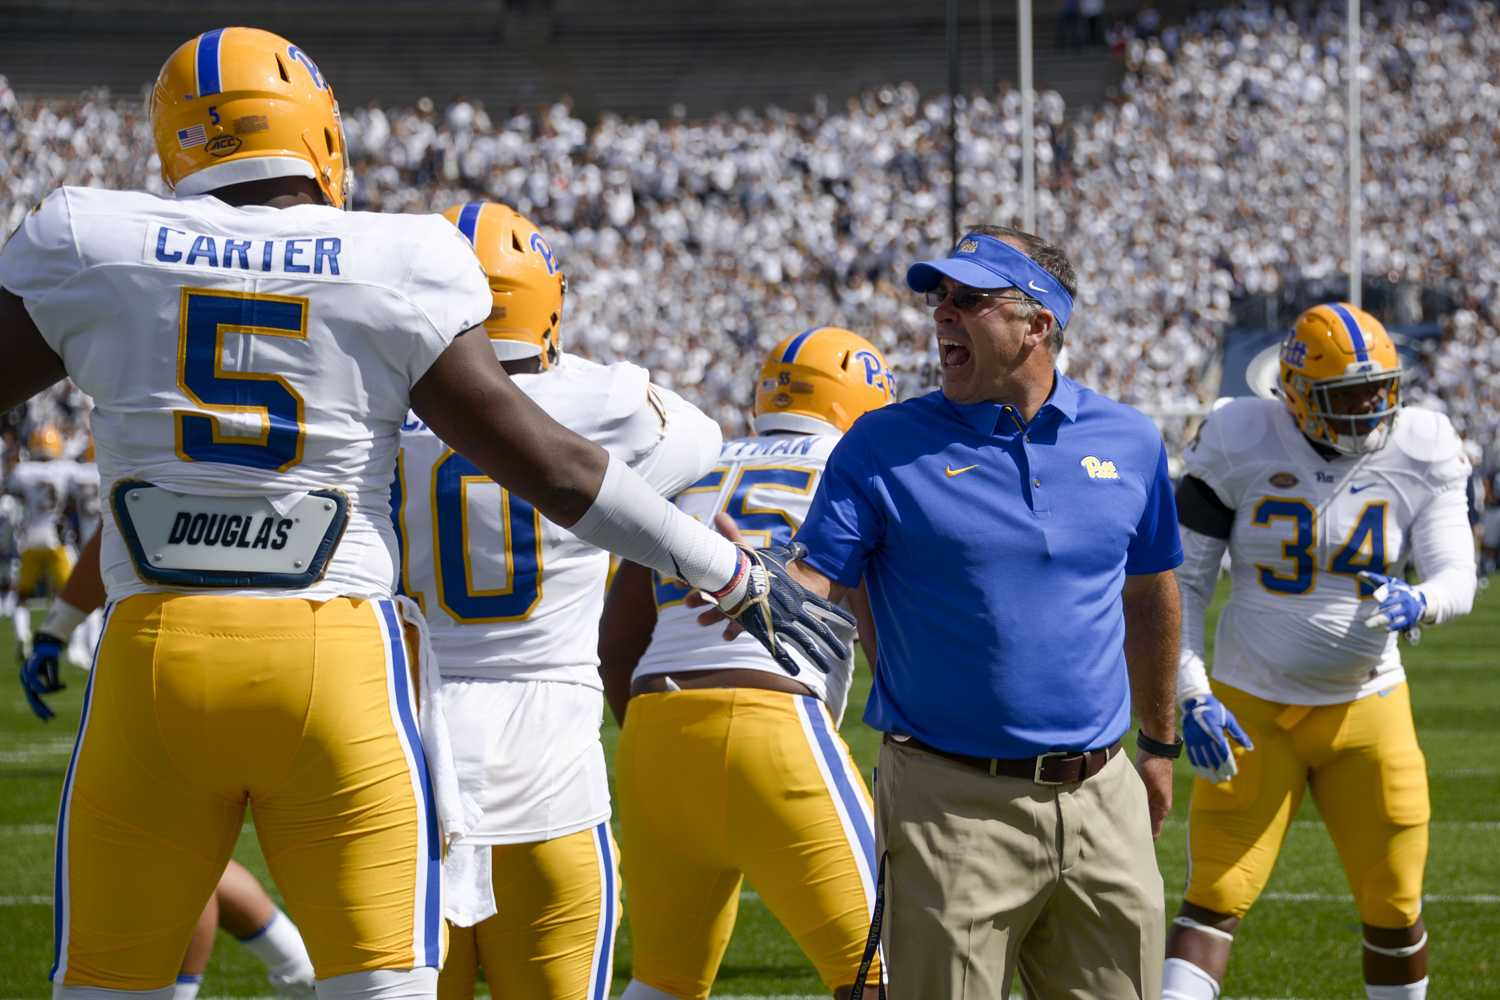 Coach Narduzzi encourages players during Pitt's game against Penn State Sept. 9. (Photo by Wenhao Wu | Assistant Visual Editor)